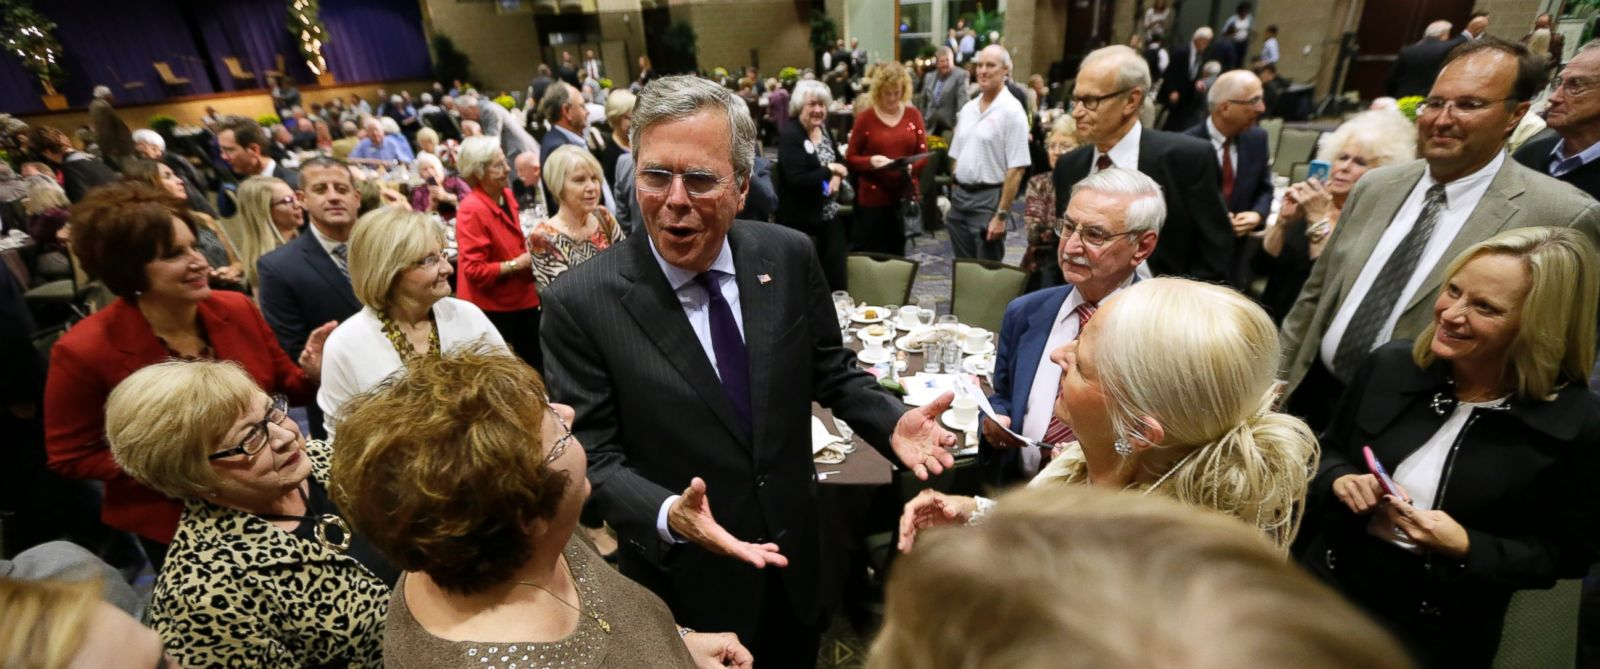 PHOTO: Republican presidential candidate former Florida Gov. Jeb Bush greets audience members after speaking at the Scott County Republican Partys Ronald Reagan Dinner, Oct. 6, 2015, in Davenport, Iowa.